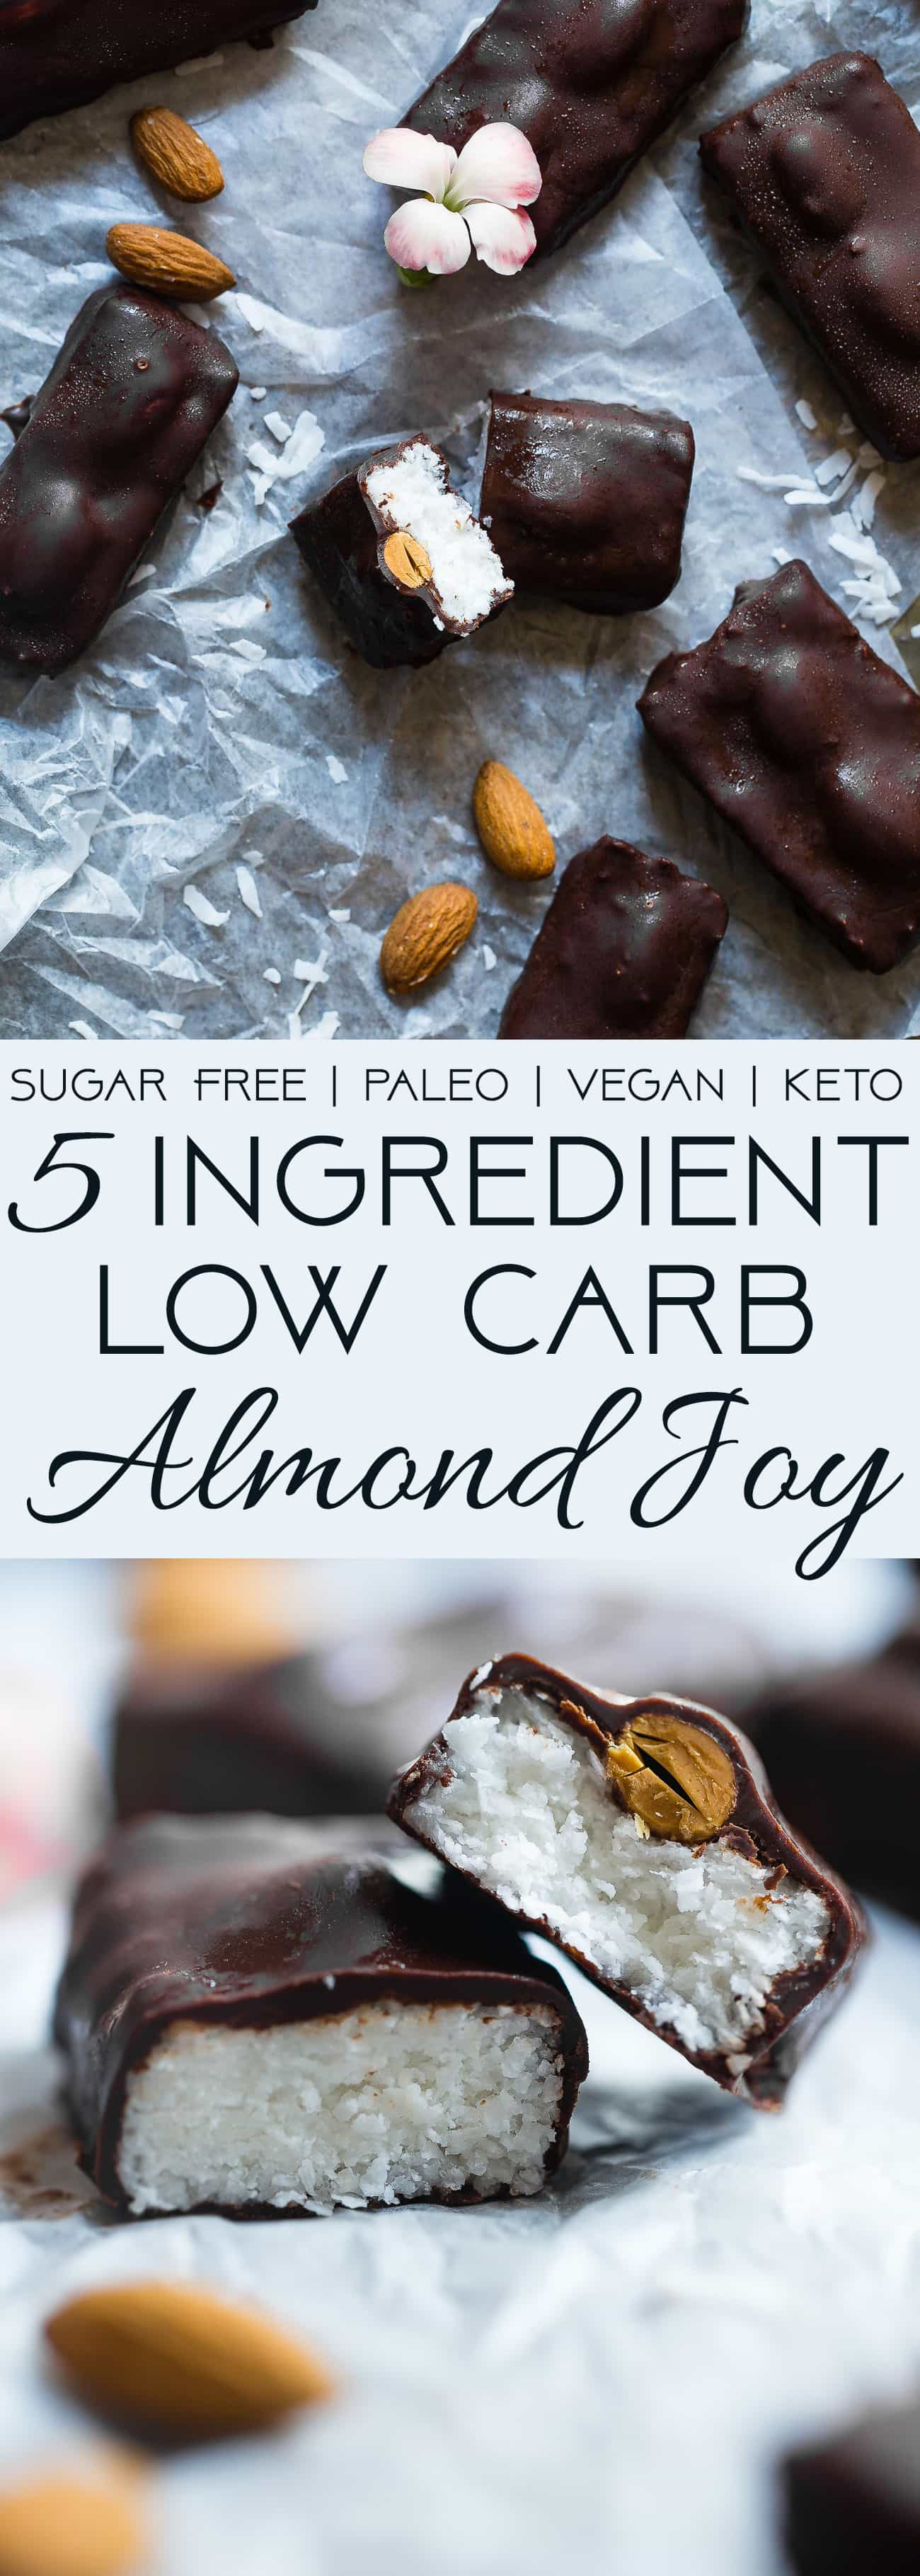 Low Carb Almond Joy Bars - These homemade paleo almond joy bars are a healthy, low carb remake of the classic candy bar that you will never believe are sugar, dairy, grain and gluten free! | Foodfaithfitness.com | @FoodFaithFit |Healthy almond joy. almond joy recipe. vegan almond joy. almond joy bites. gluten free desserts. vegan dessert recipes. keto desserts. sugar free desserts. keto almond joy. fat bombs.